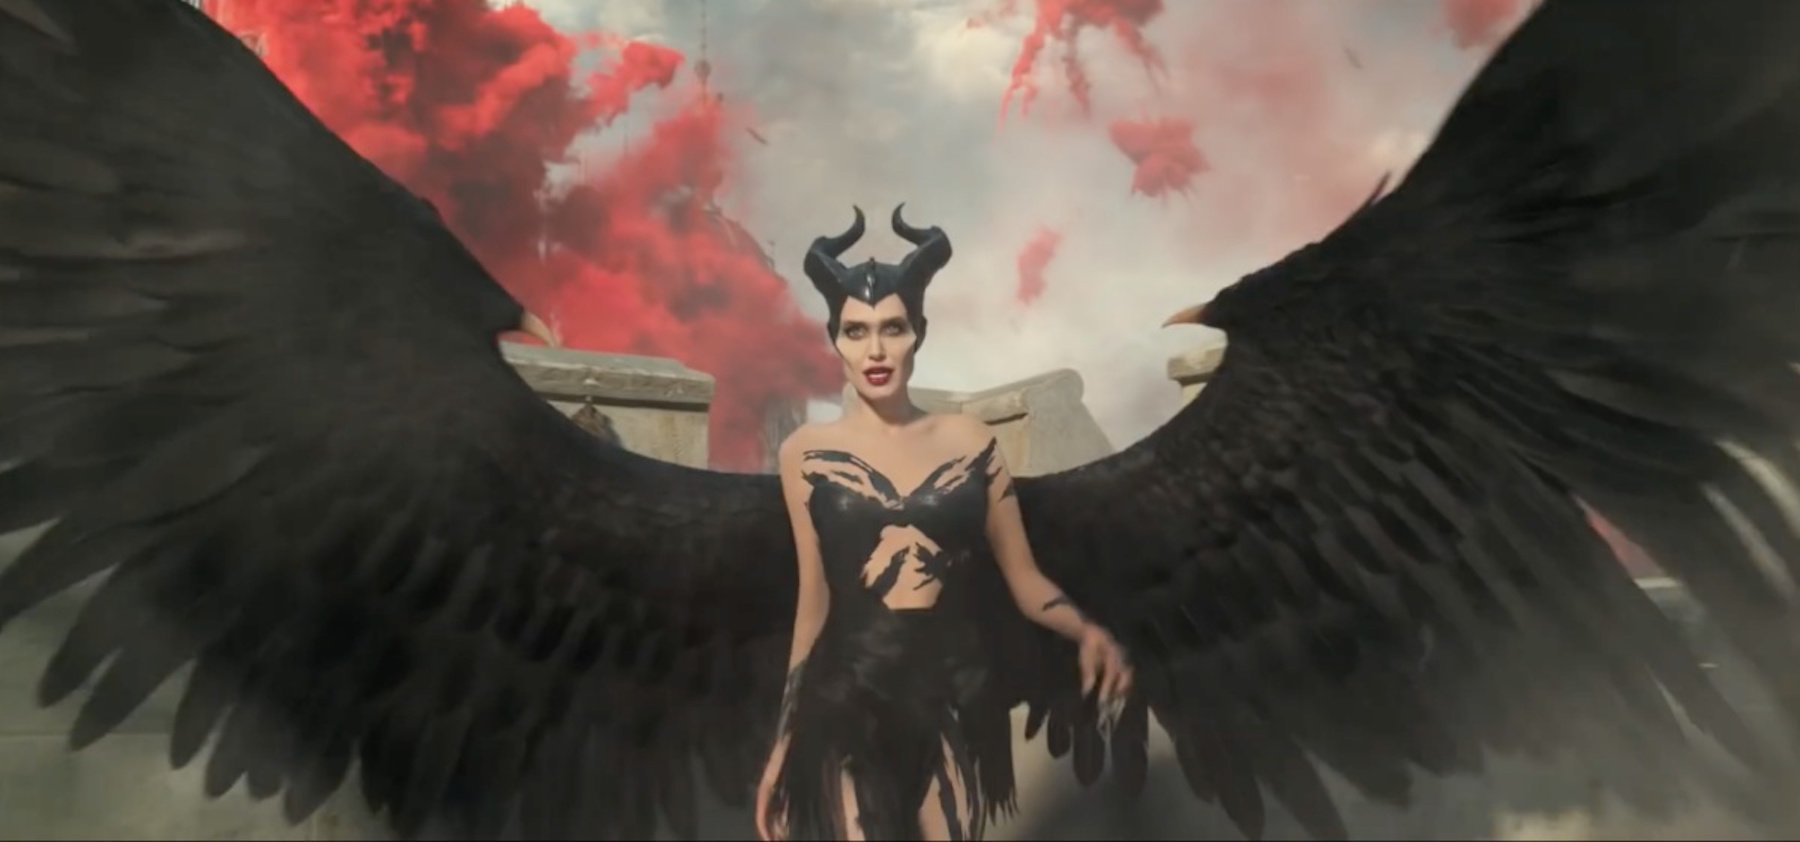 'Maleficent' flies higher in sequel 'Mistress of Evil'